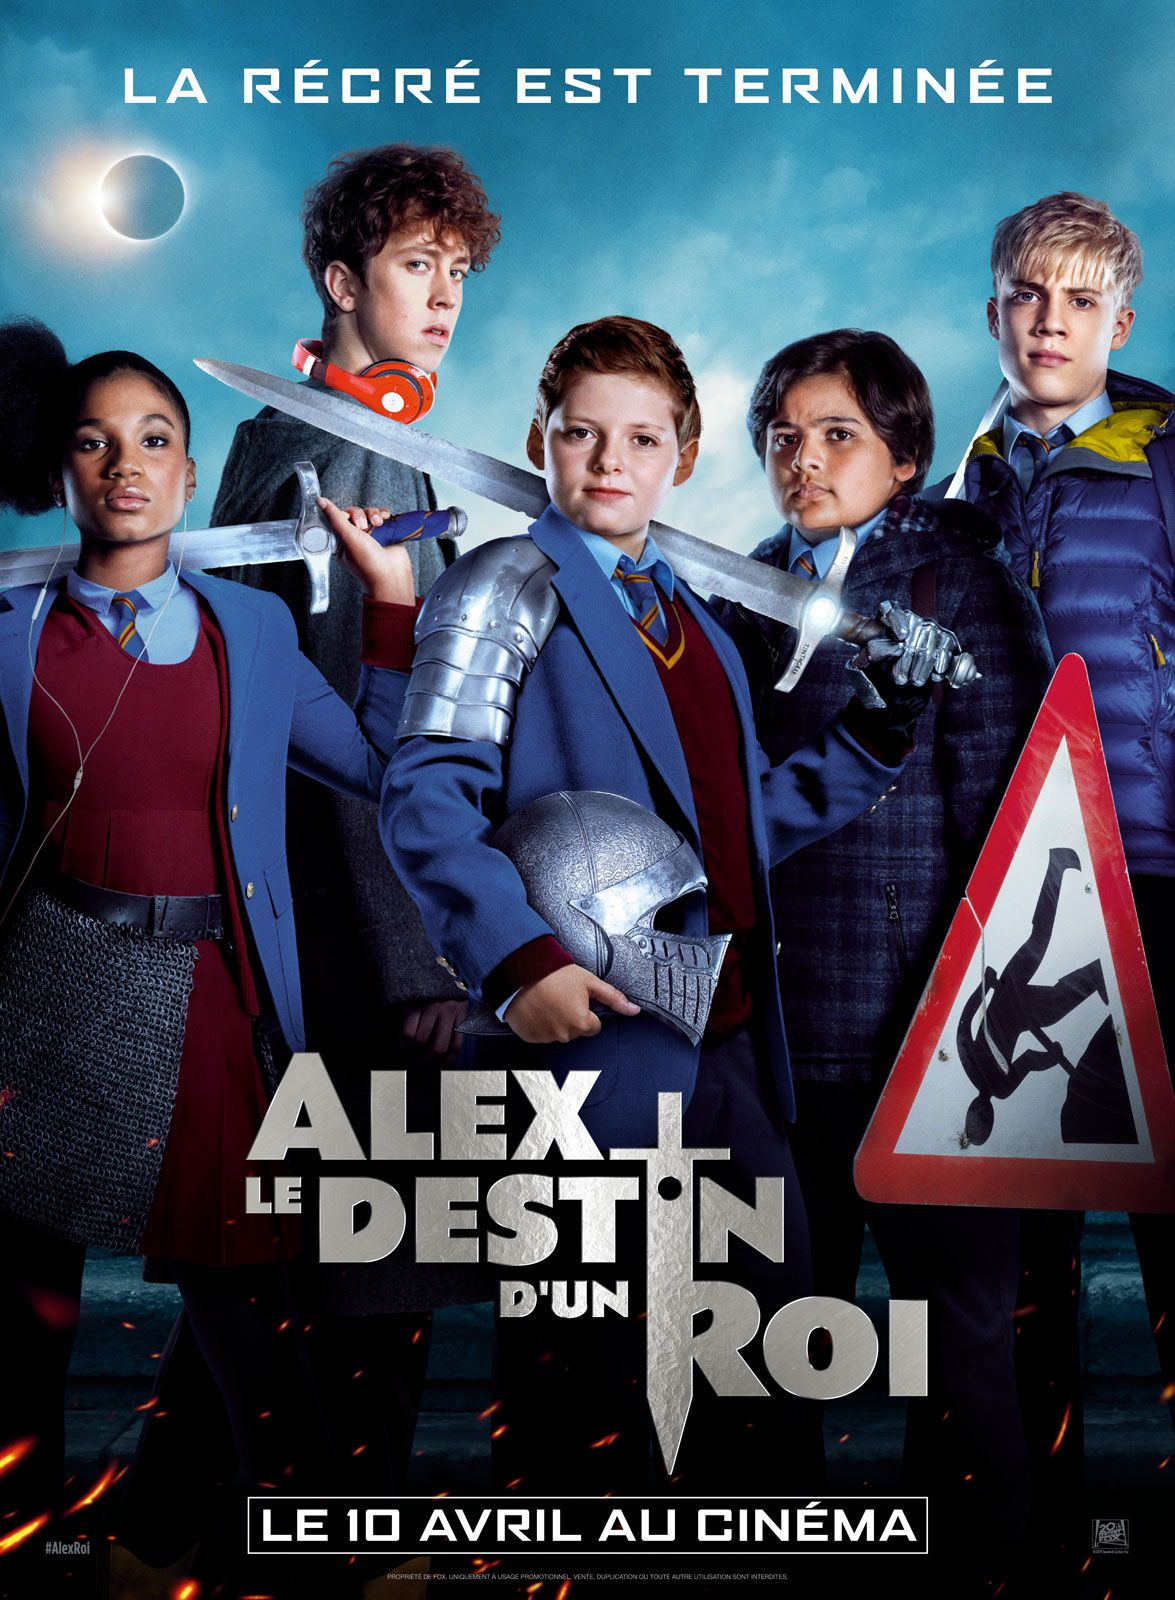 Alex, le Destin d'un roi - Film (2019) streaming VF gratuit complet